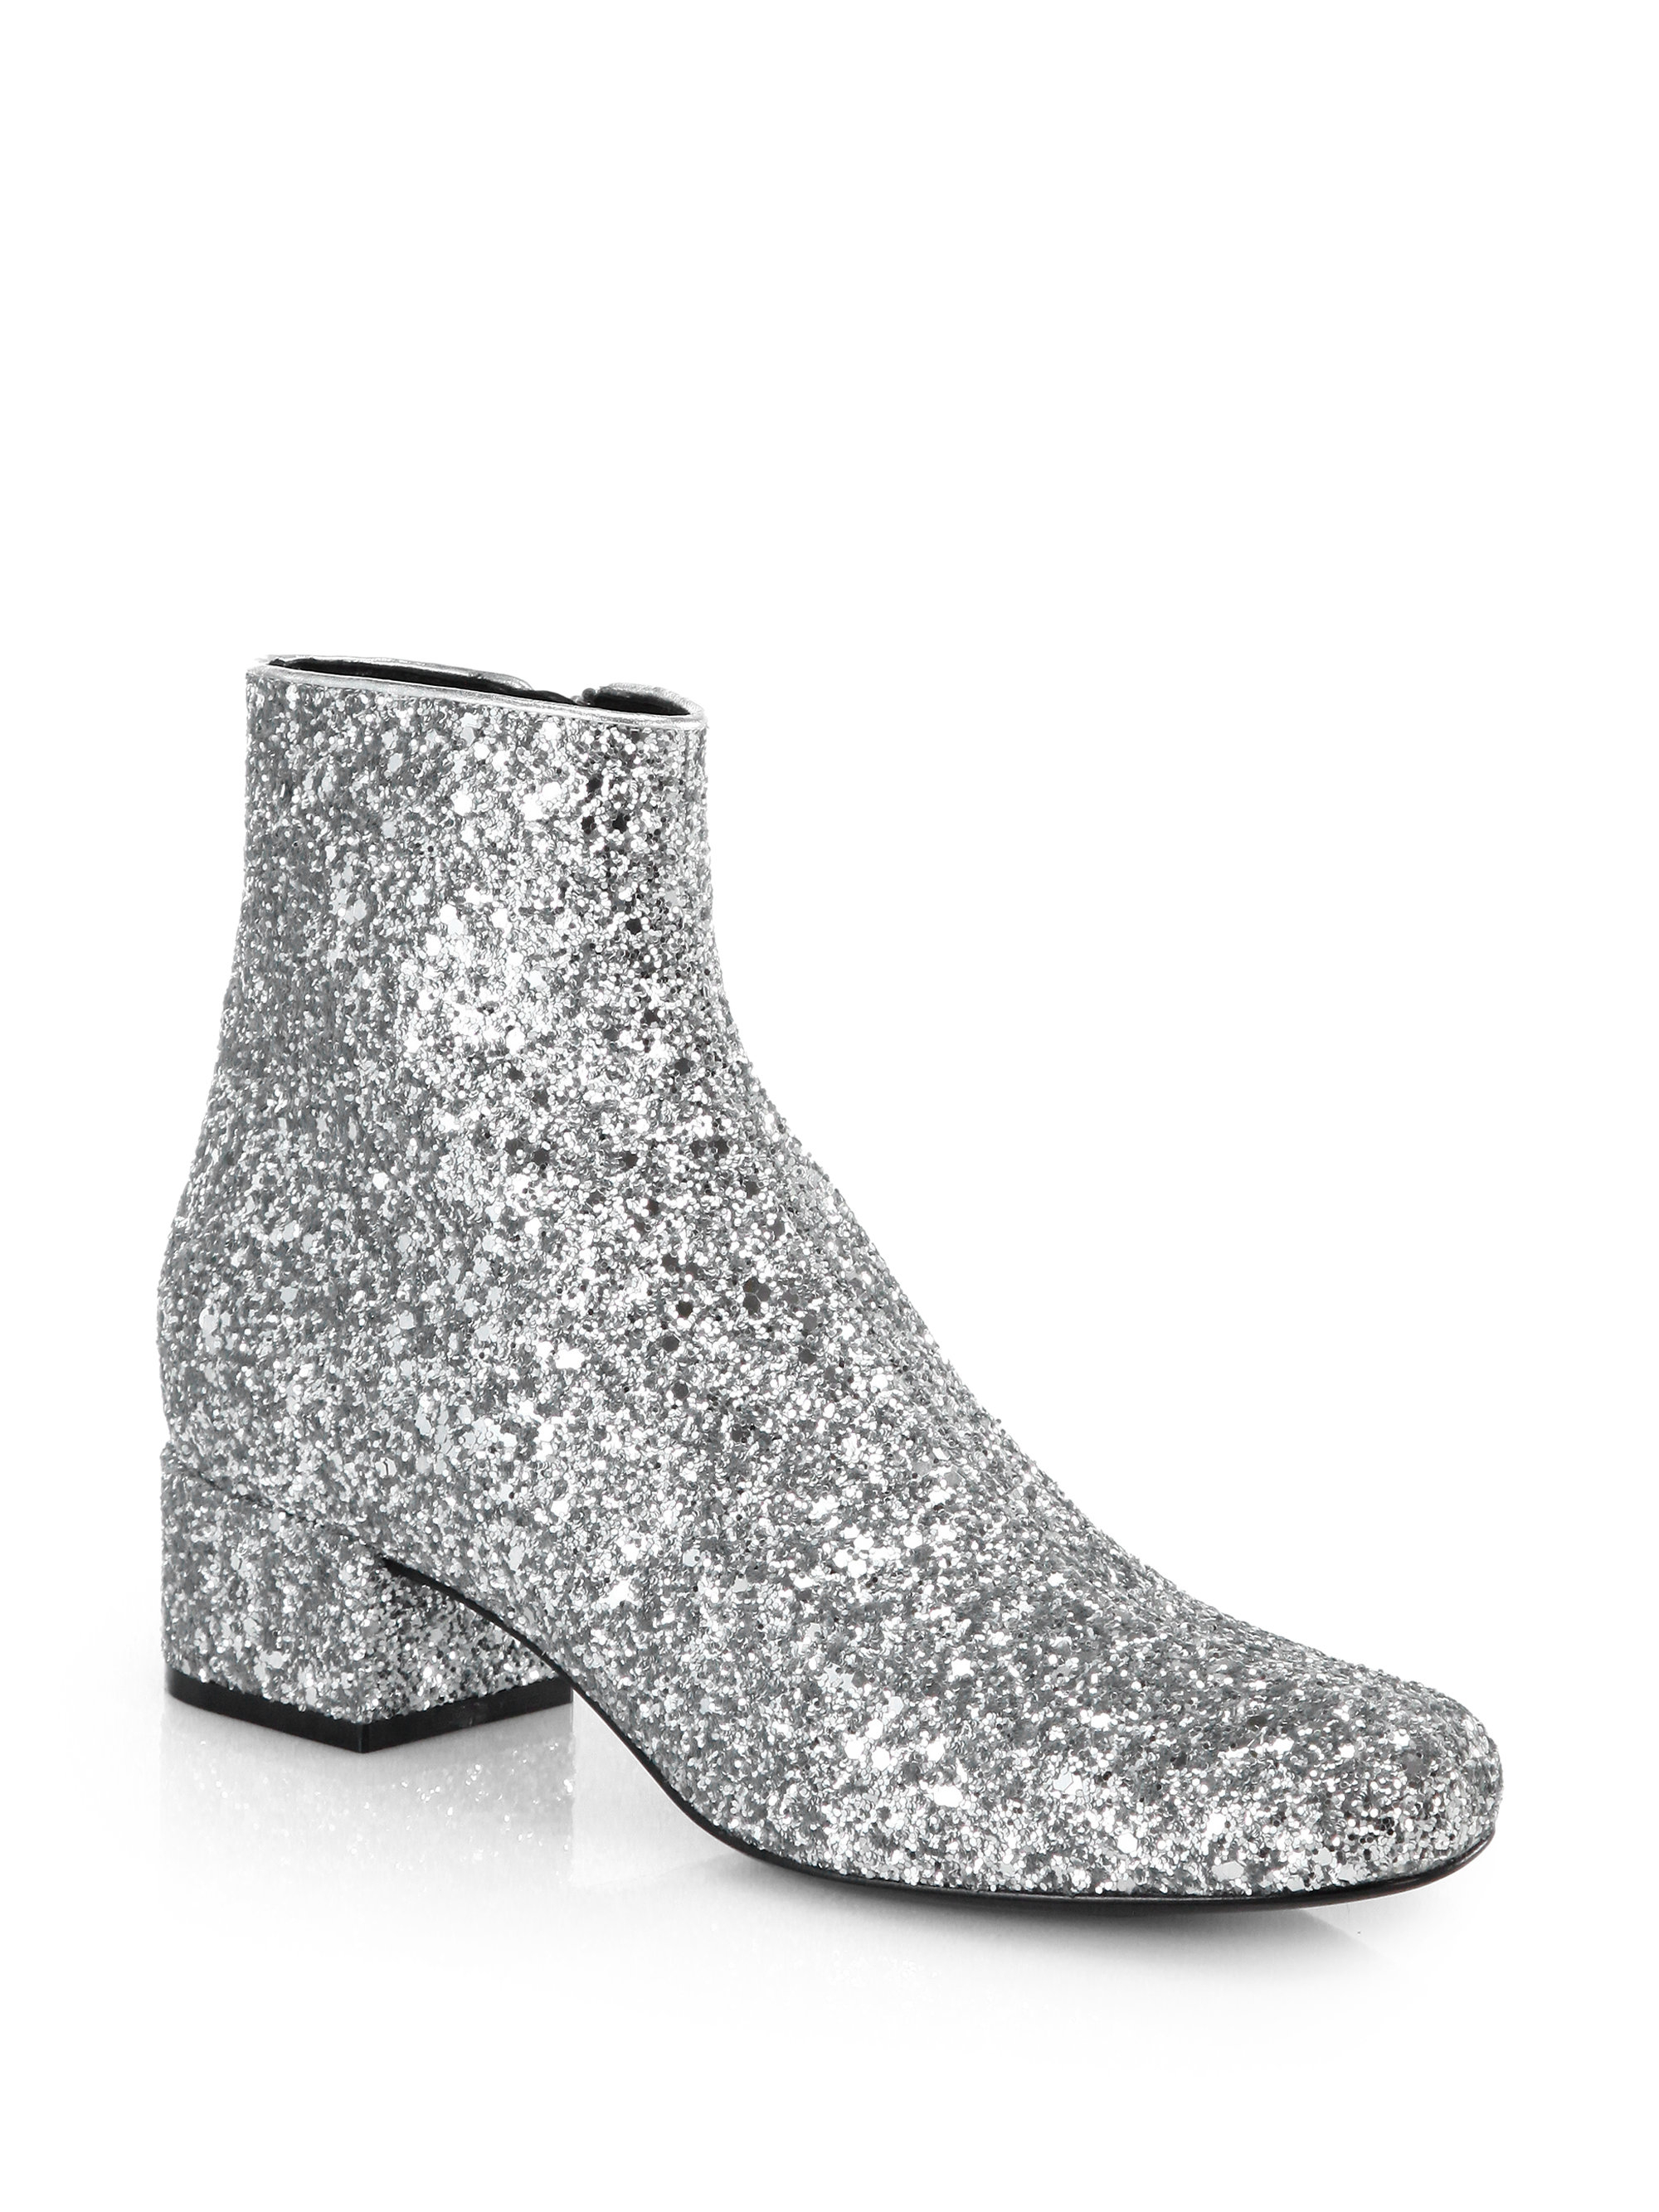 laurent glitter leather ankle boots in silver